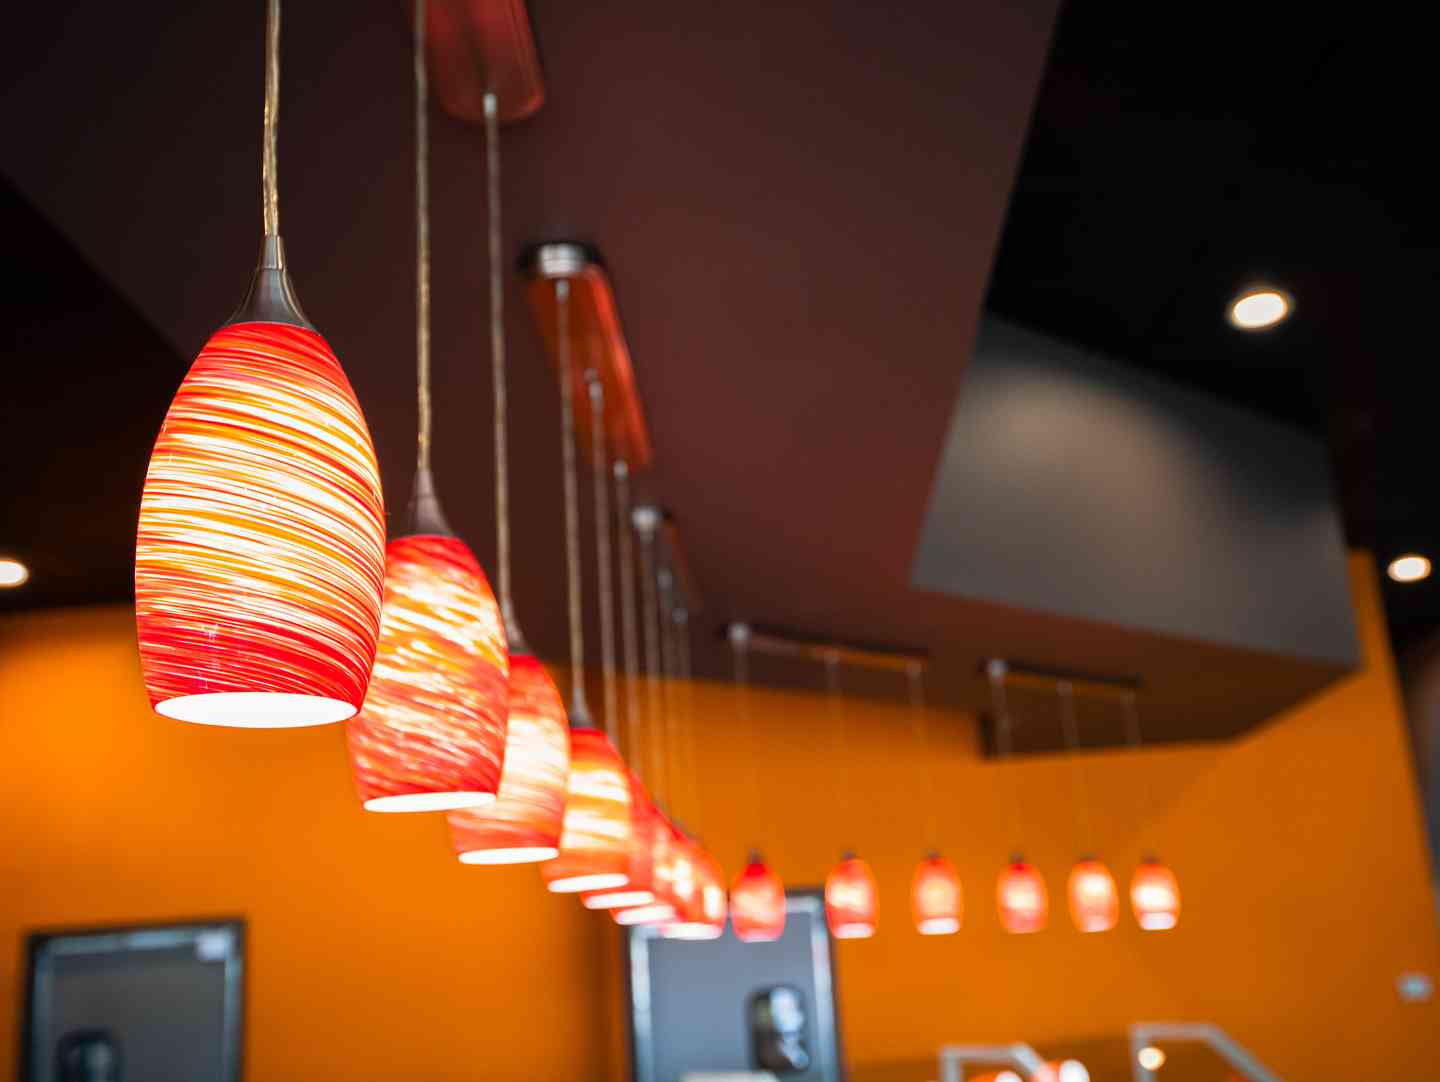 Decorative lighting over the food bar